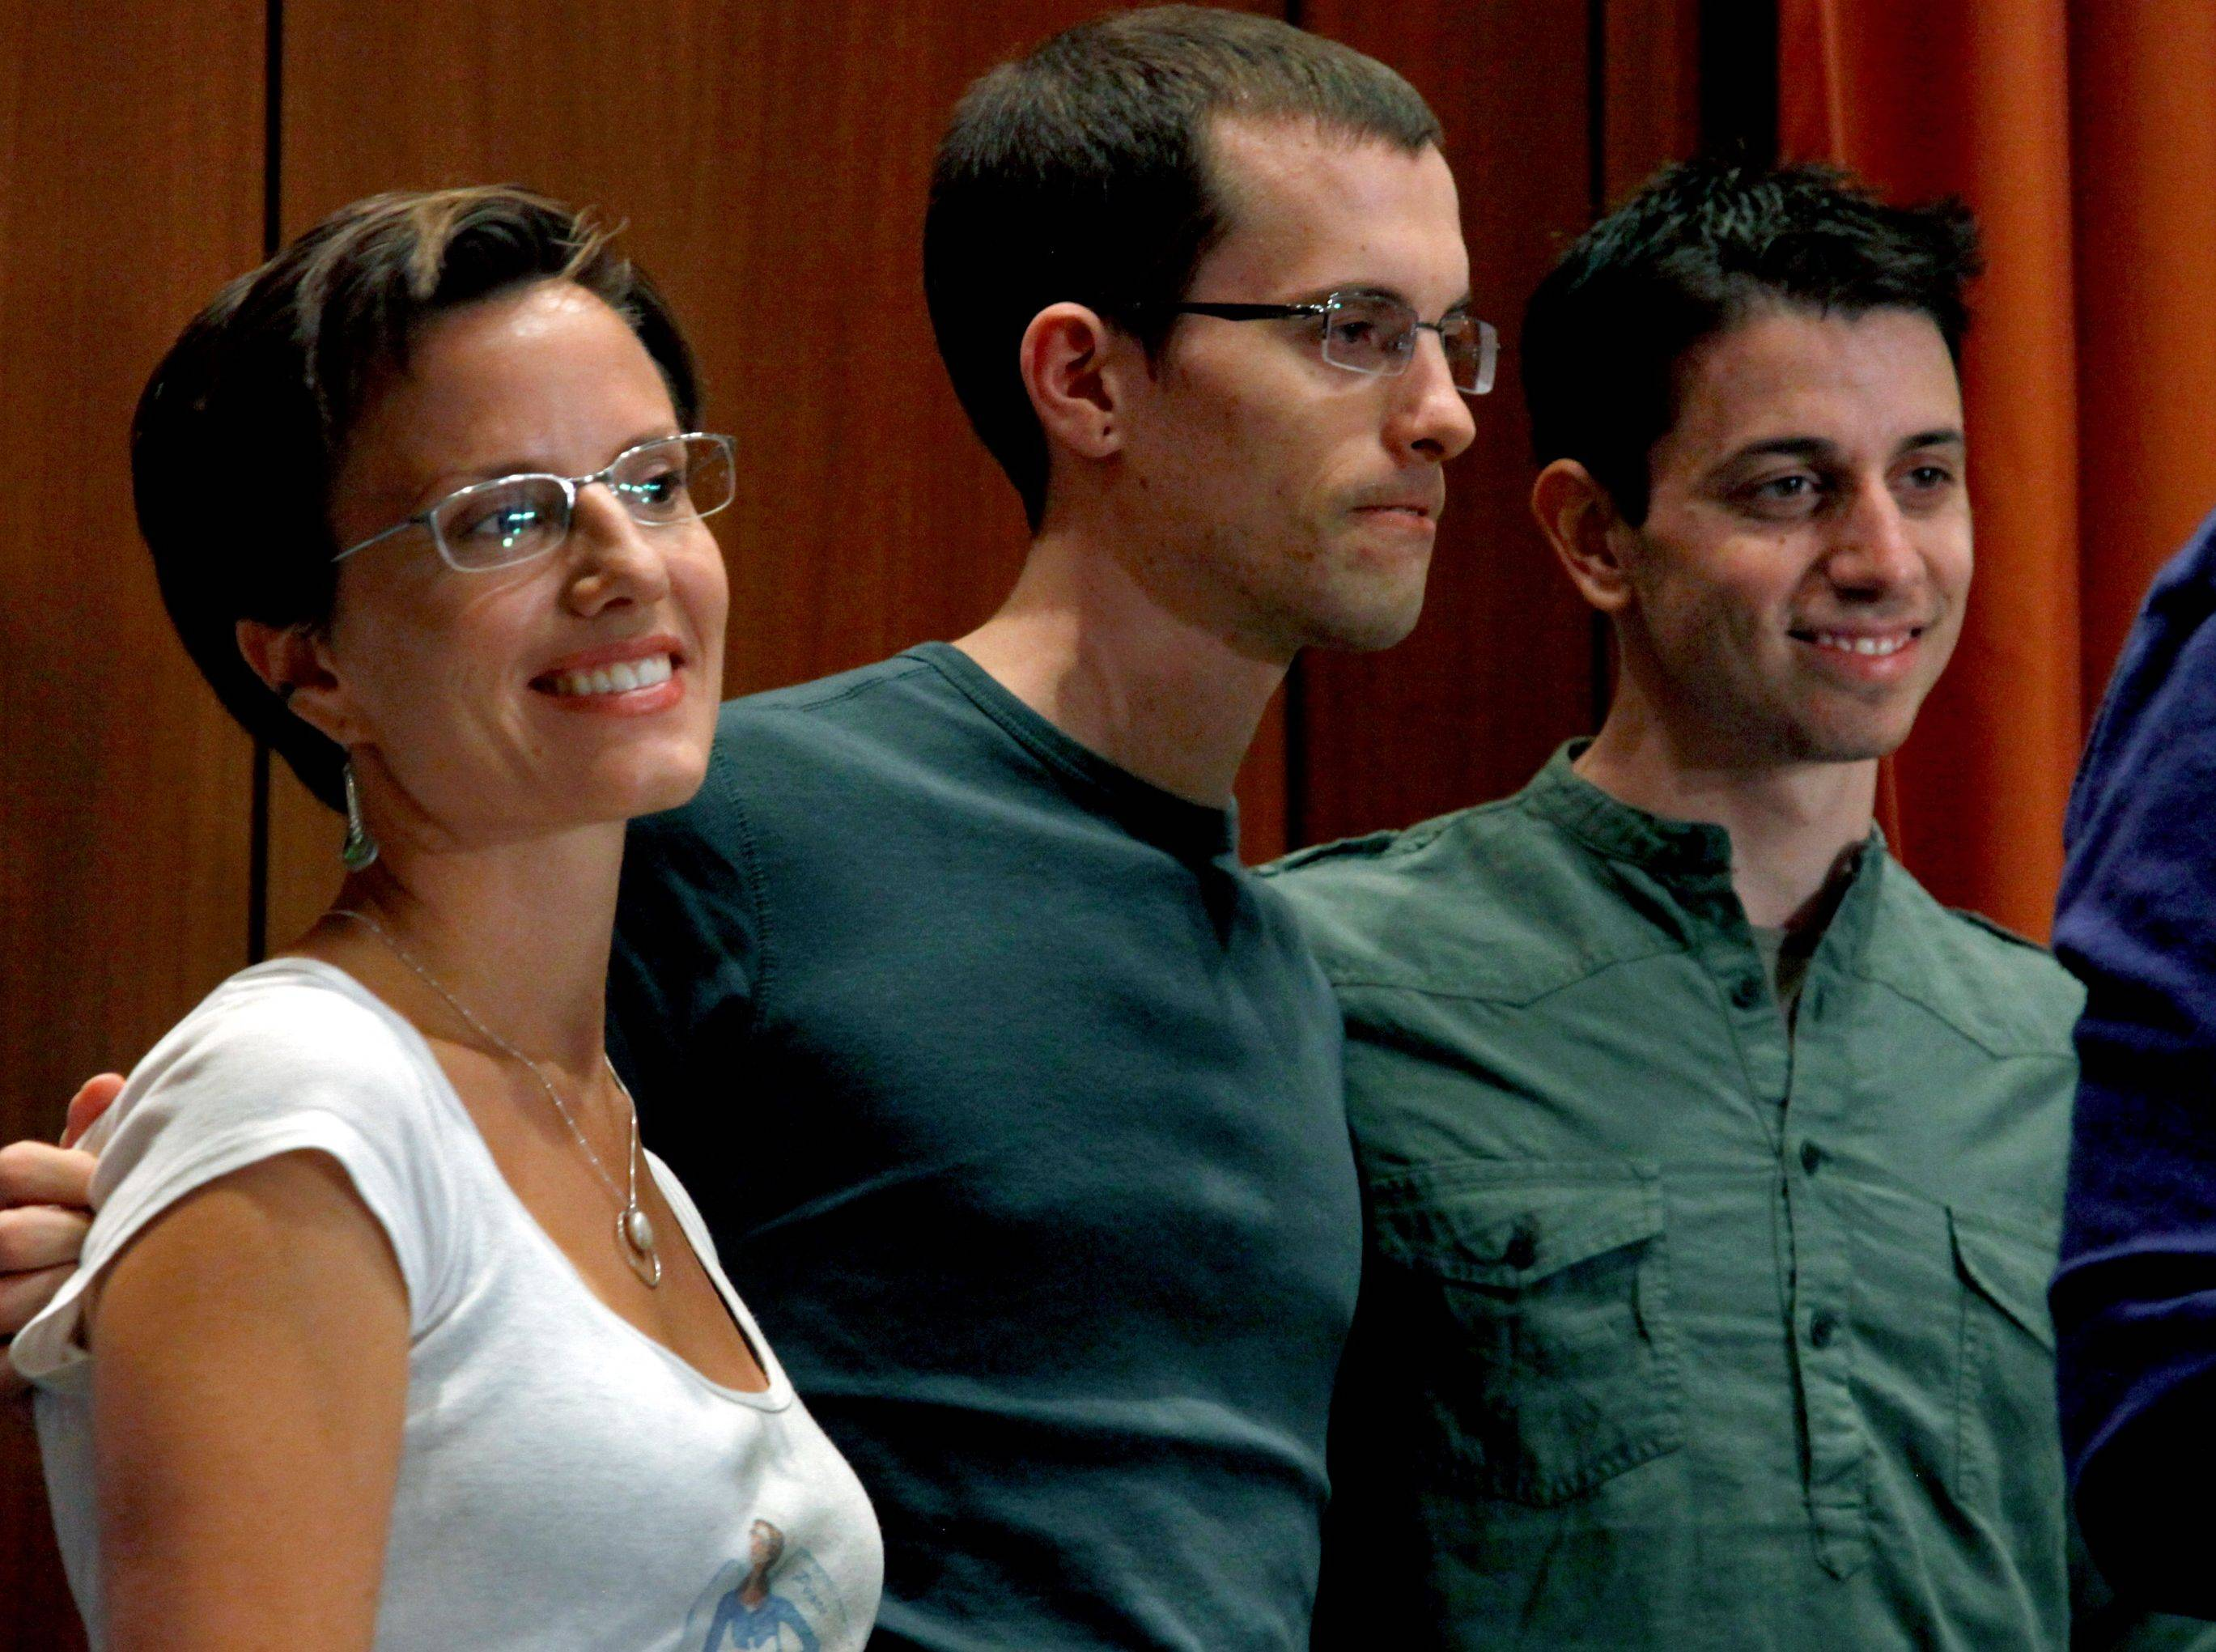 Sarah Shourd, from left, Shane Bauer and Josh Fattal speak to the press in New York on Sunday, the first day in America for the two men after they were freed from an Iranaian jail last week. Shourd was also held in Iran but was released last year.